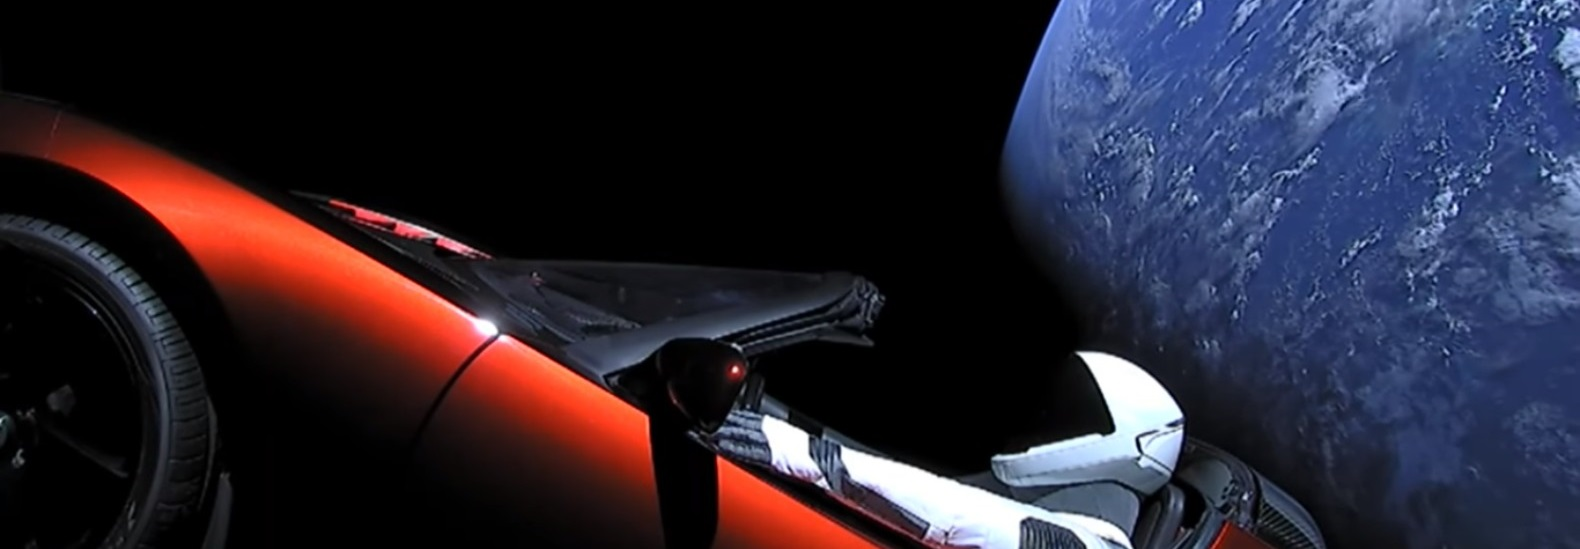 Car In Space Wallpaper Elon Musk Elon Musk Releases Historic Video Of Starman Cruising